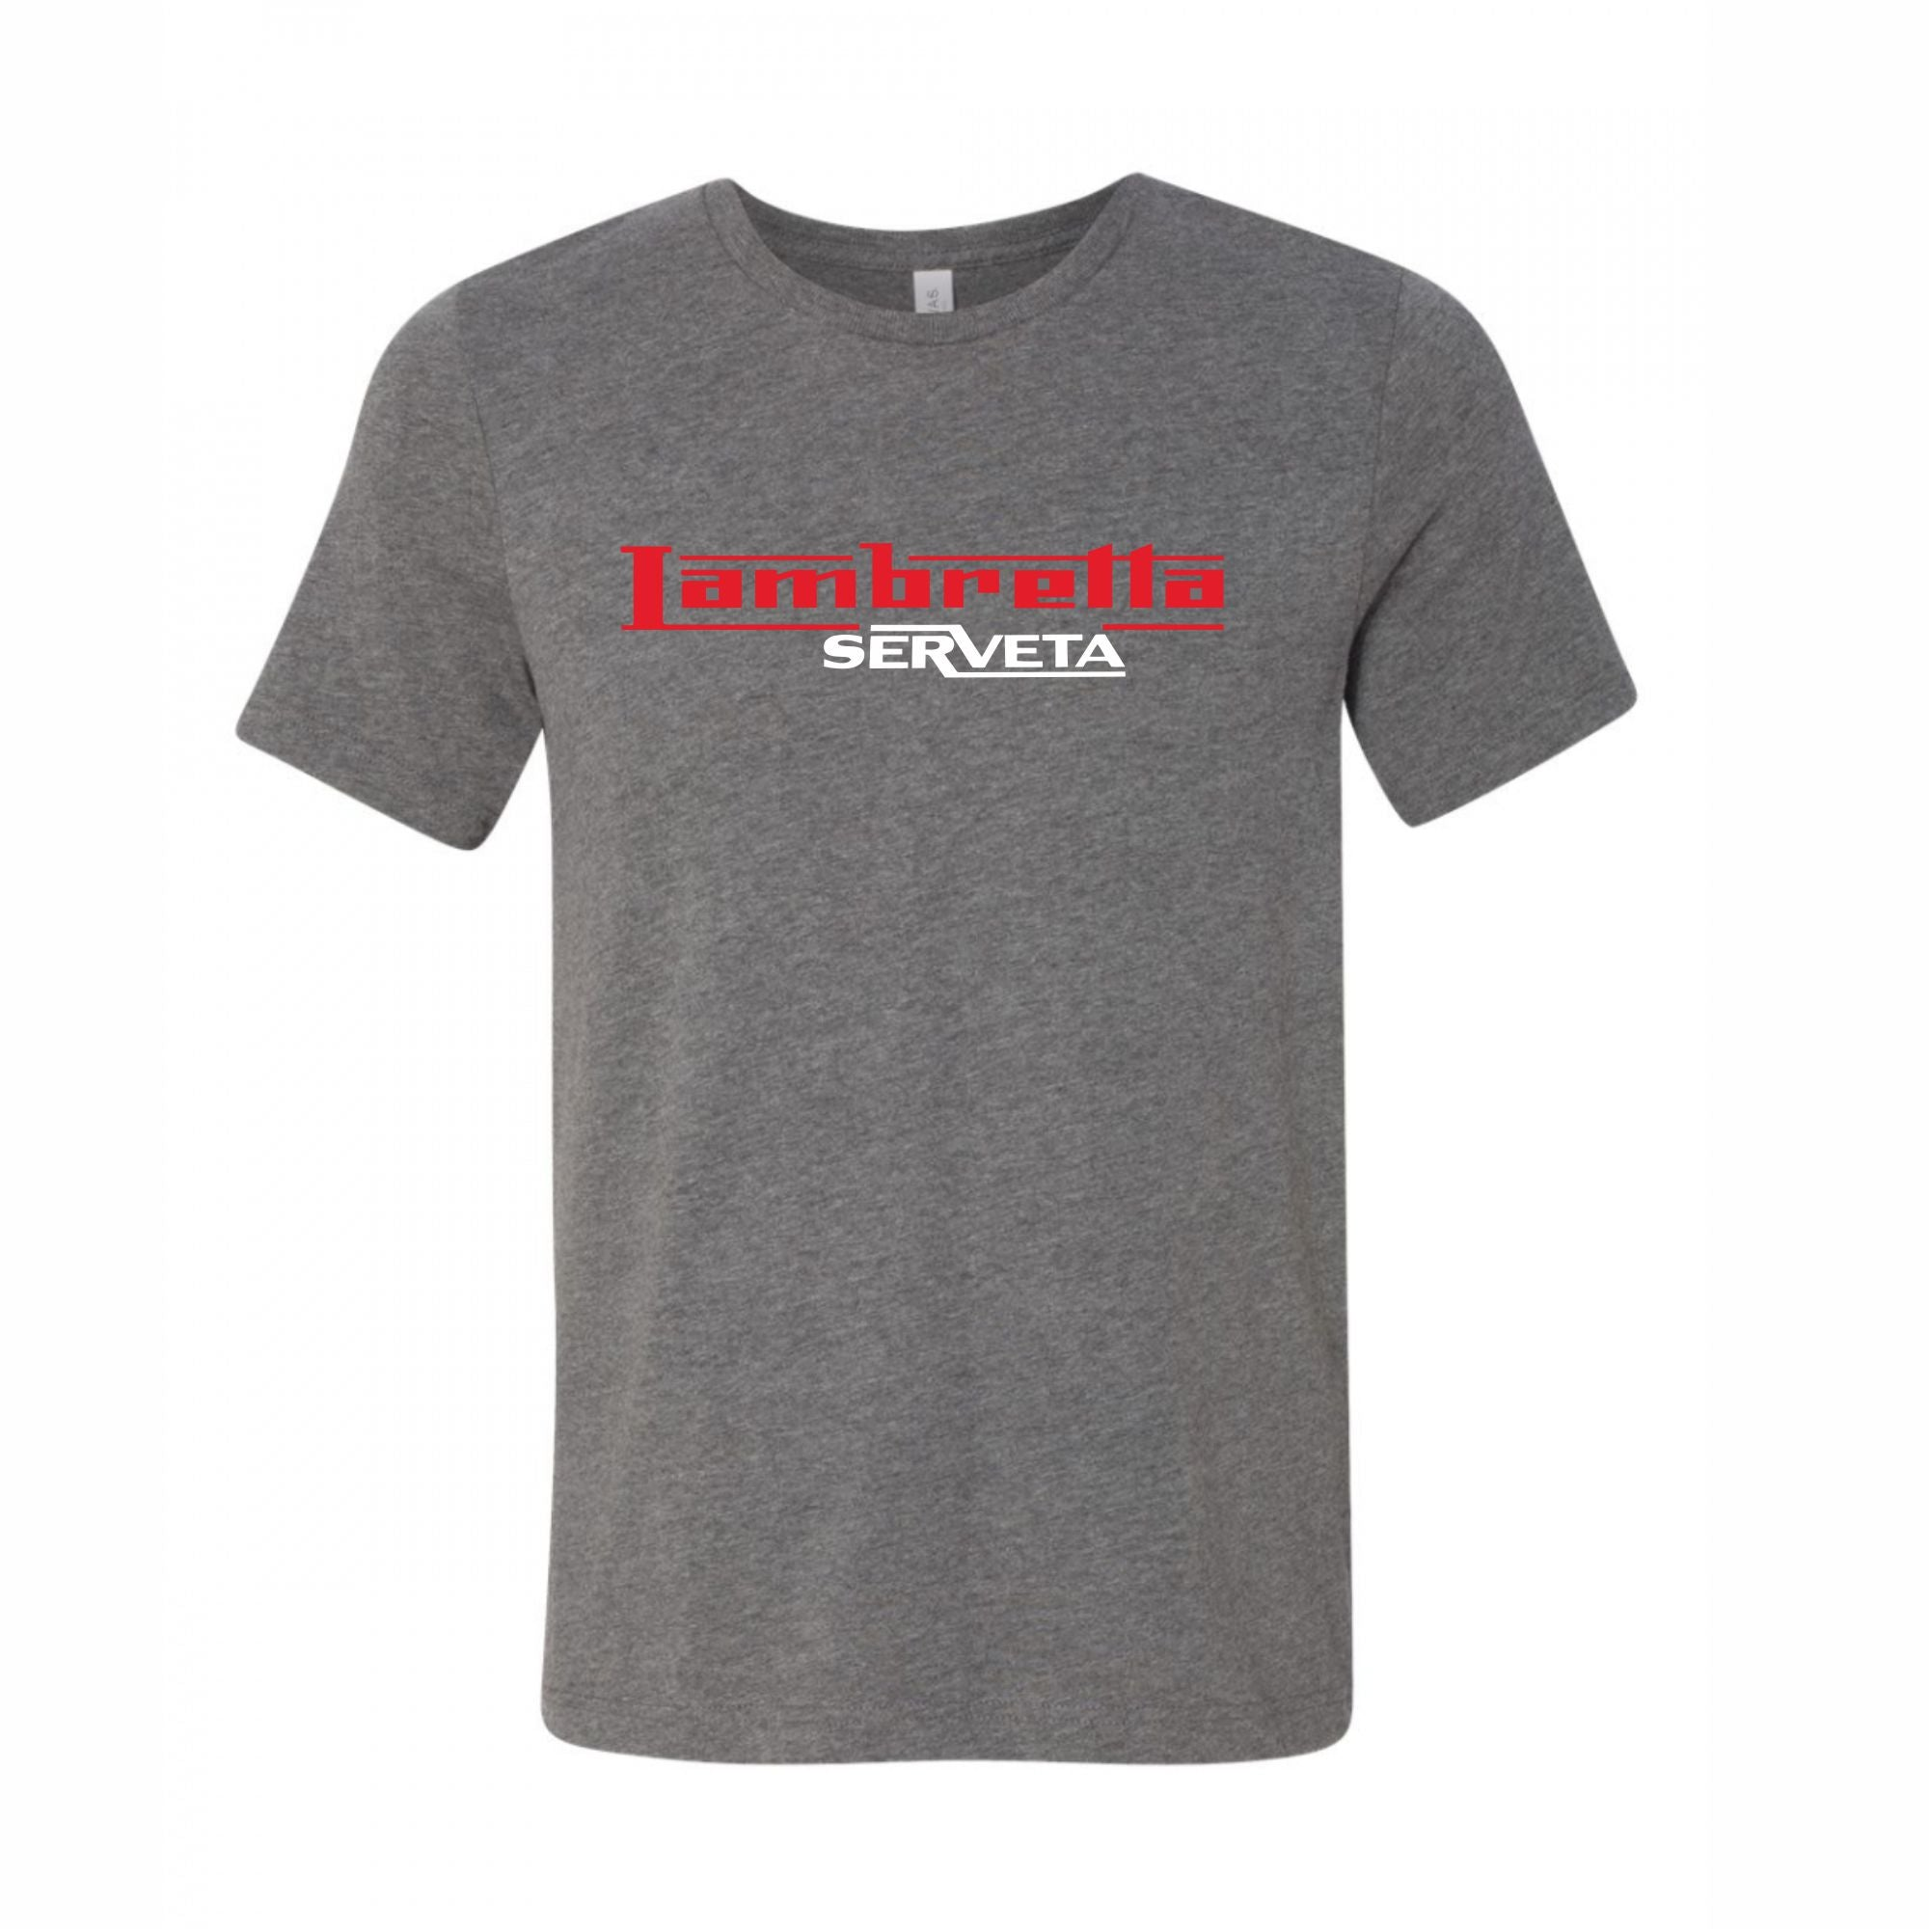 Lambretta Serveta Premium Quality T-Shirt - Comes In Dark Heather Grey FREE UK POSTAGE !!